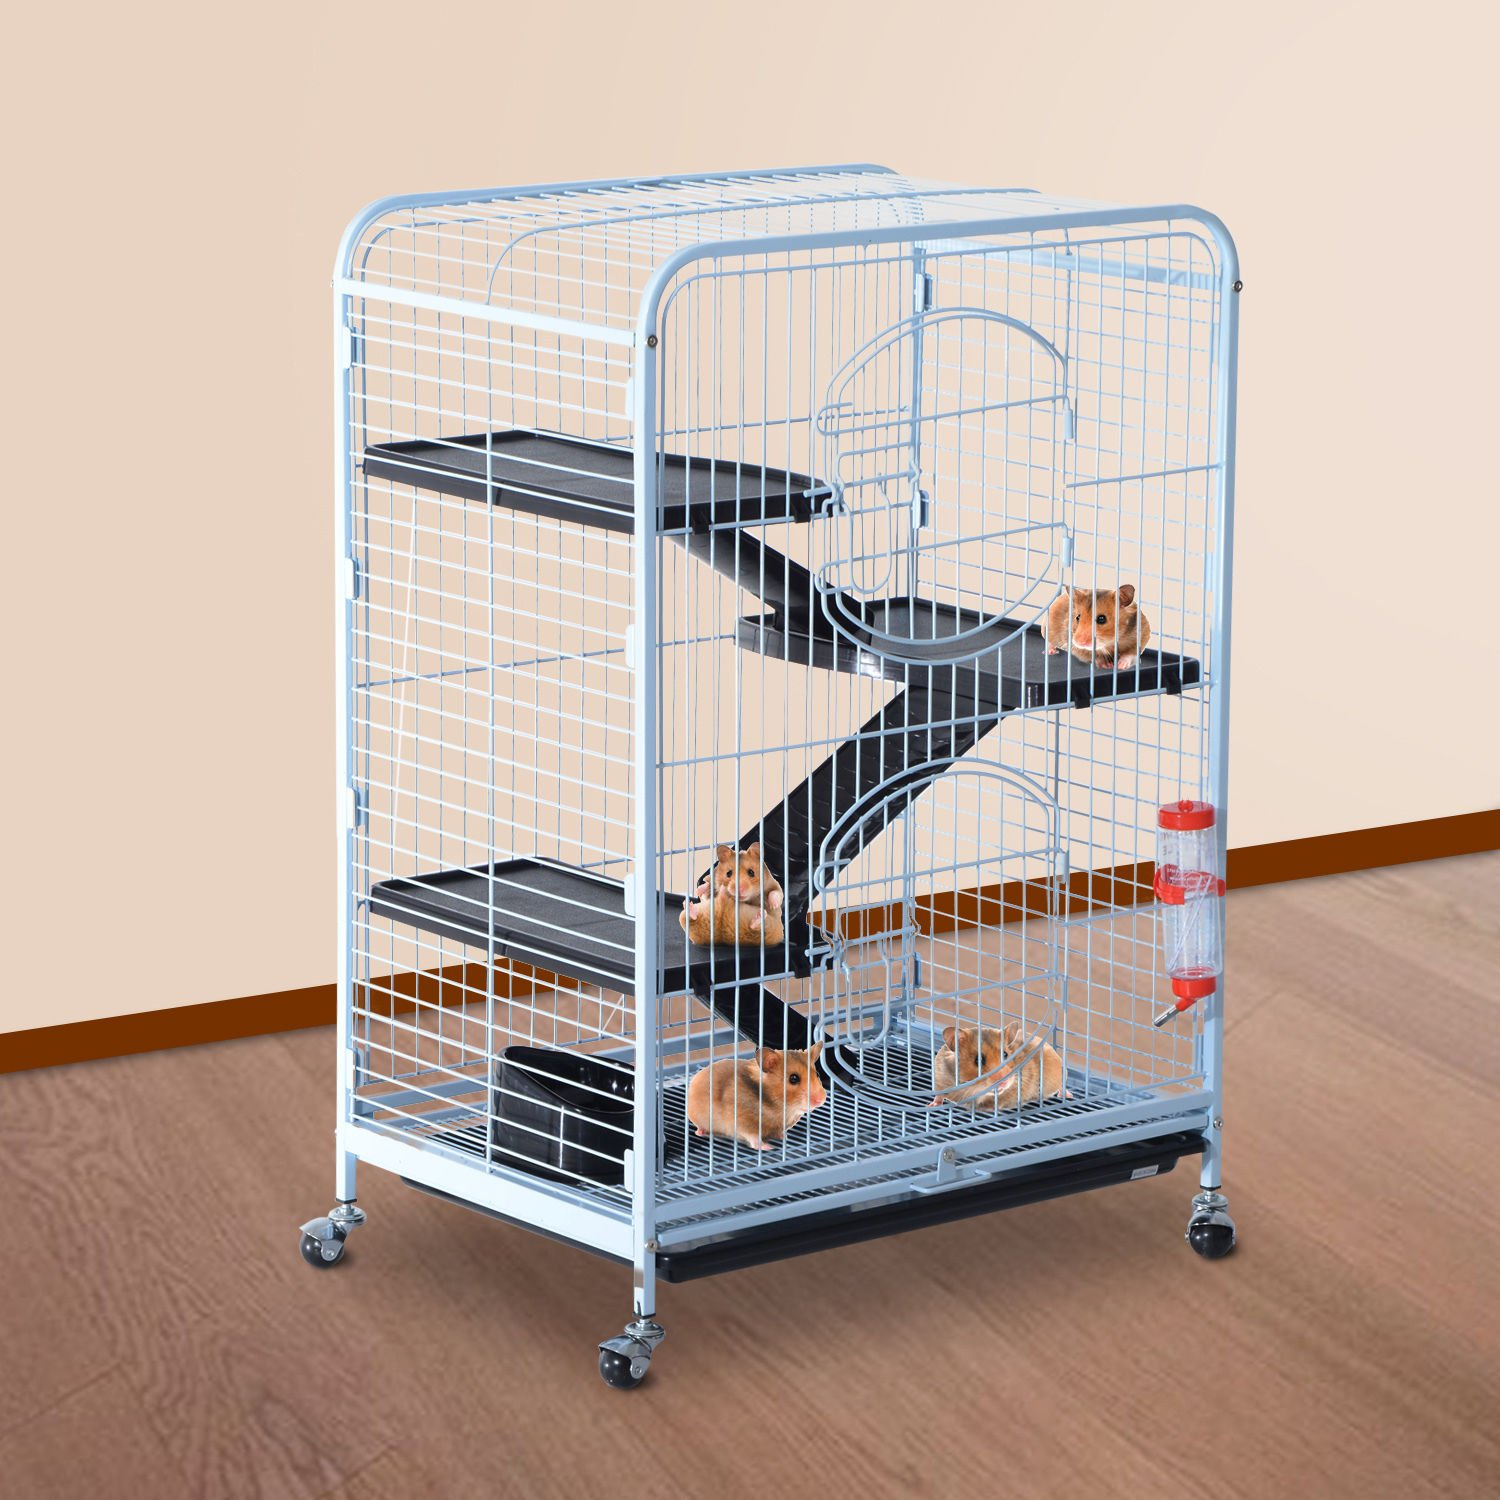 PawHut 37'' 4 Level Indoor Portable Pet Habitat Small Animal Cage Kit With Plastic Shelves And Ramps - White by PawHut (Image #2)